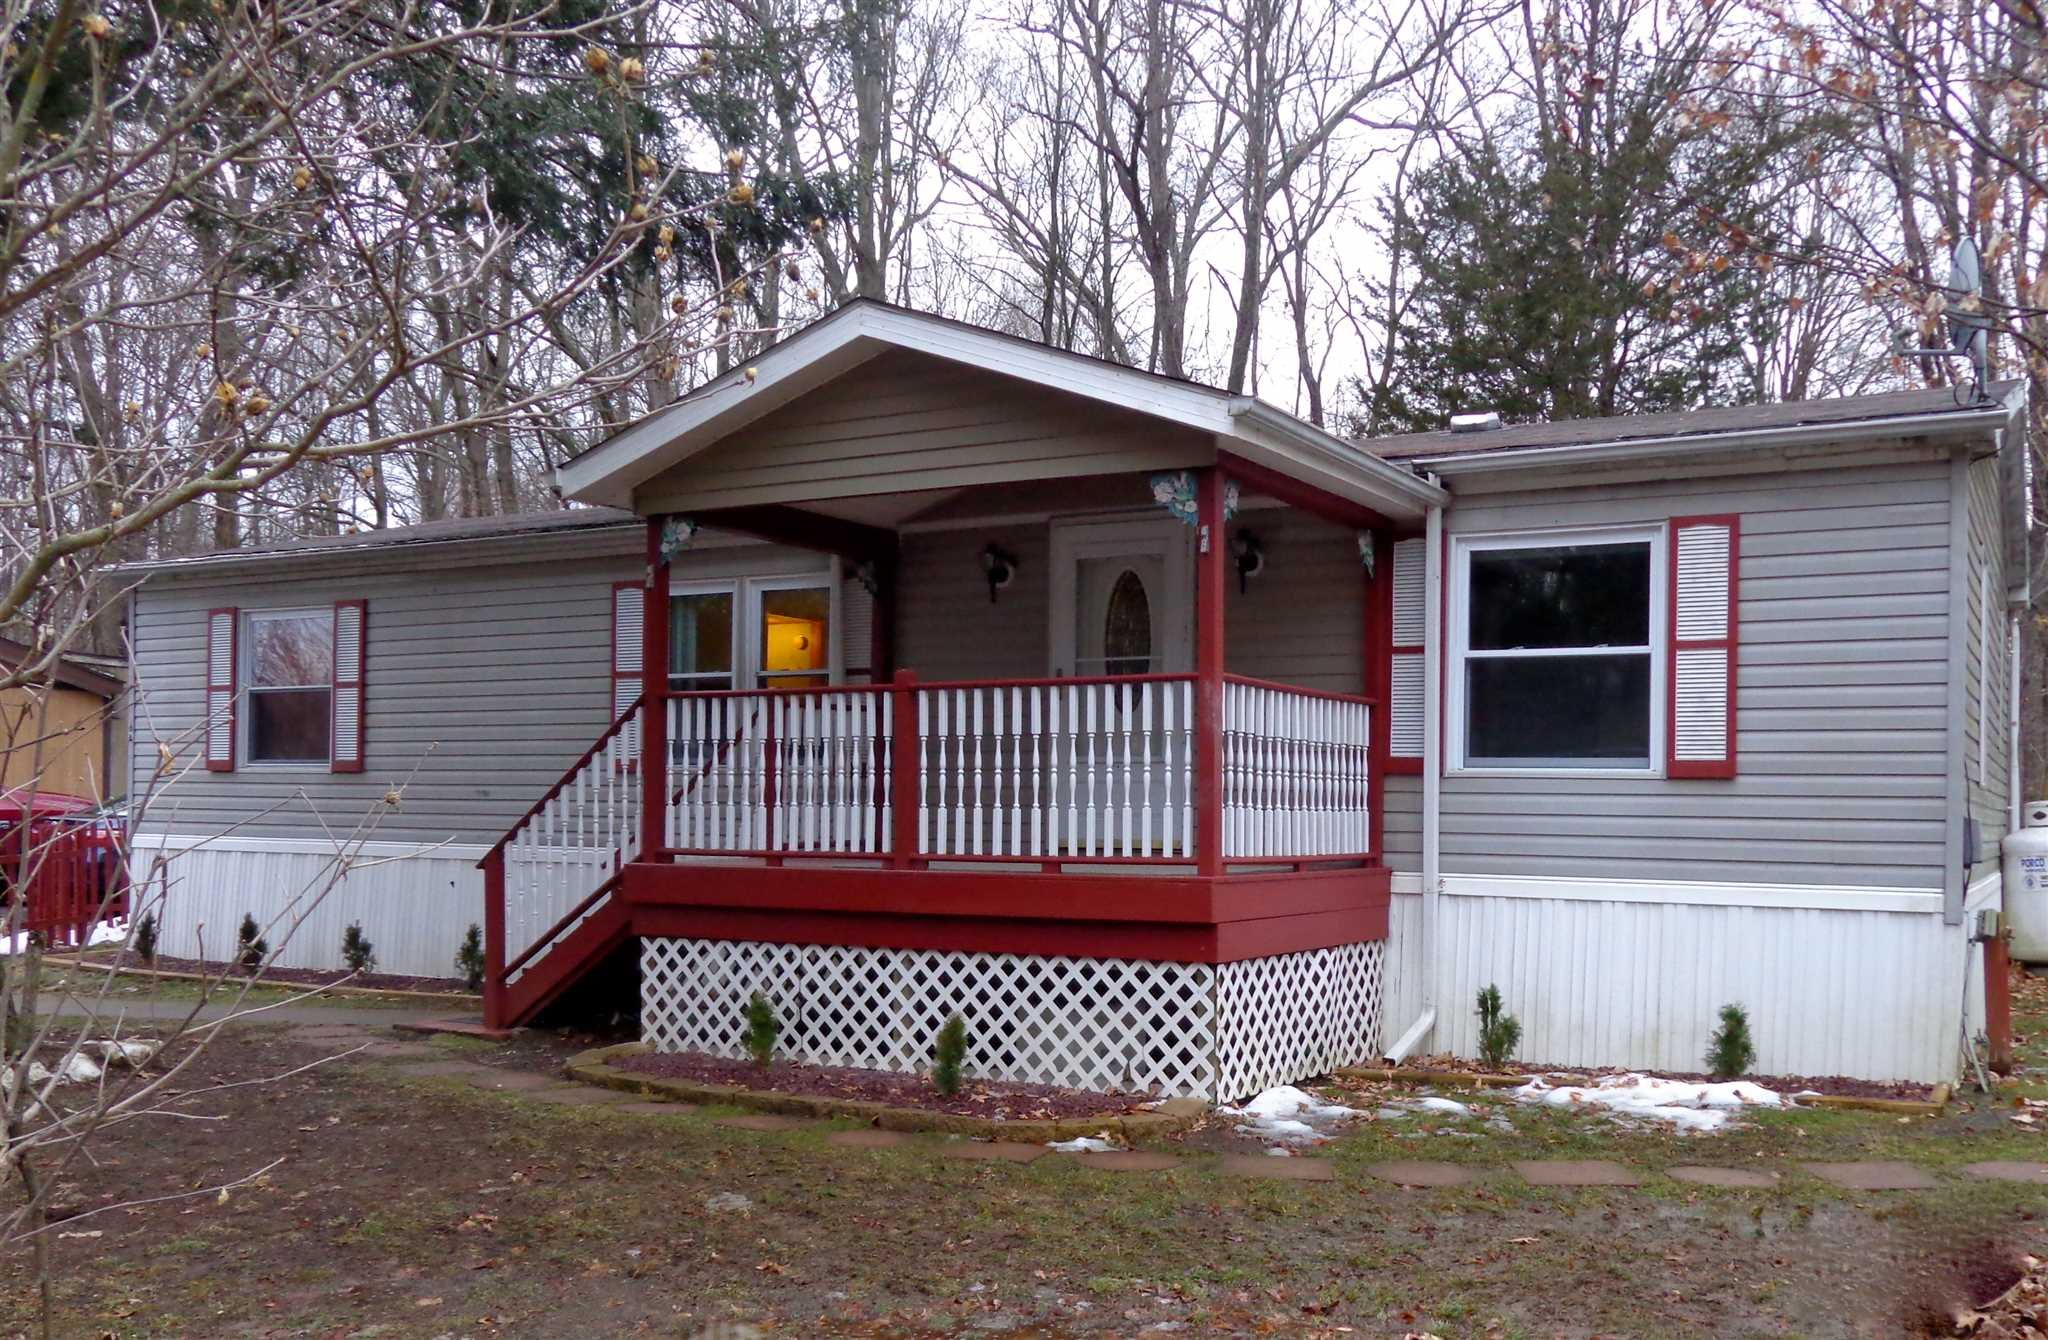 Single Family Home for Sale at 473 OHIOVILLE ROAD 473 OHIOVILLE ROAD New Paltz, New York 12561 United States